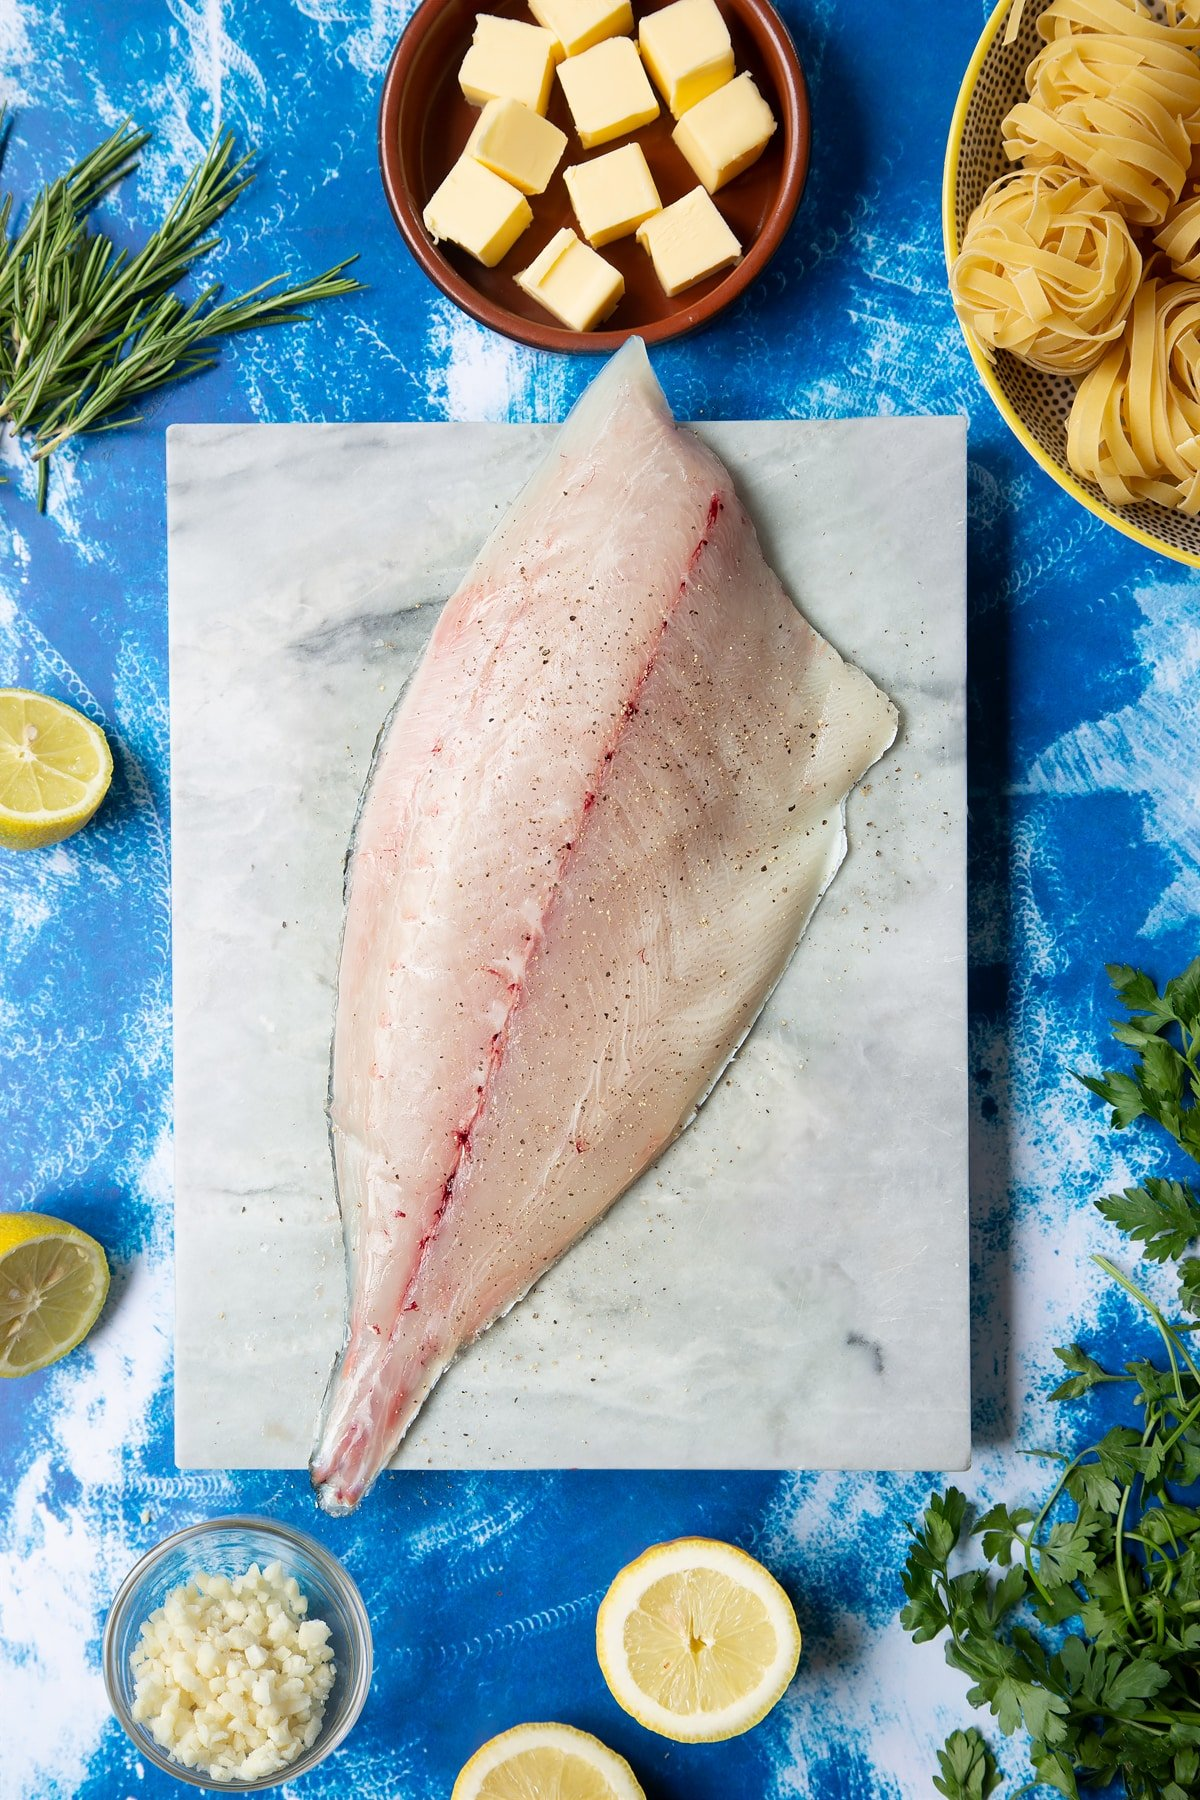 A Dutch Yellowtail fillet on a marble board, skin side down, seasoned with salt and pepper. Hand shown for scale